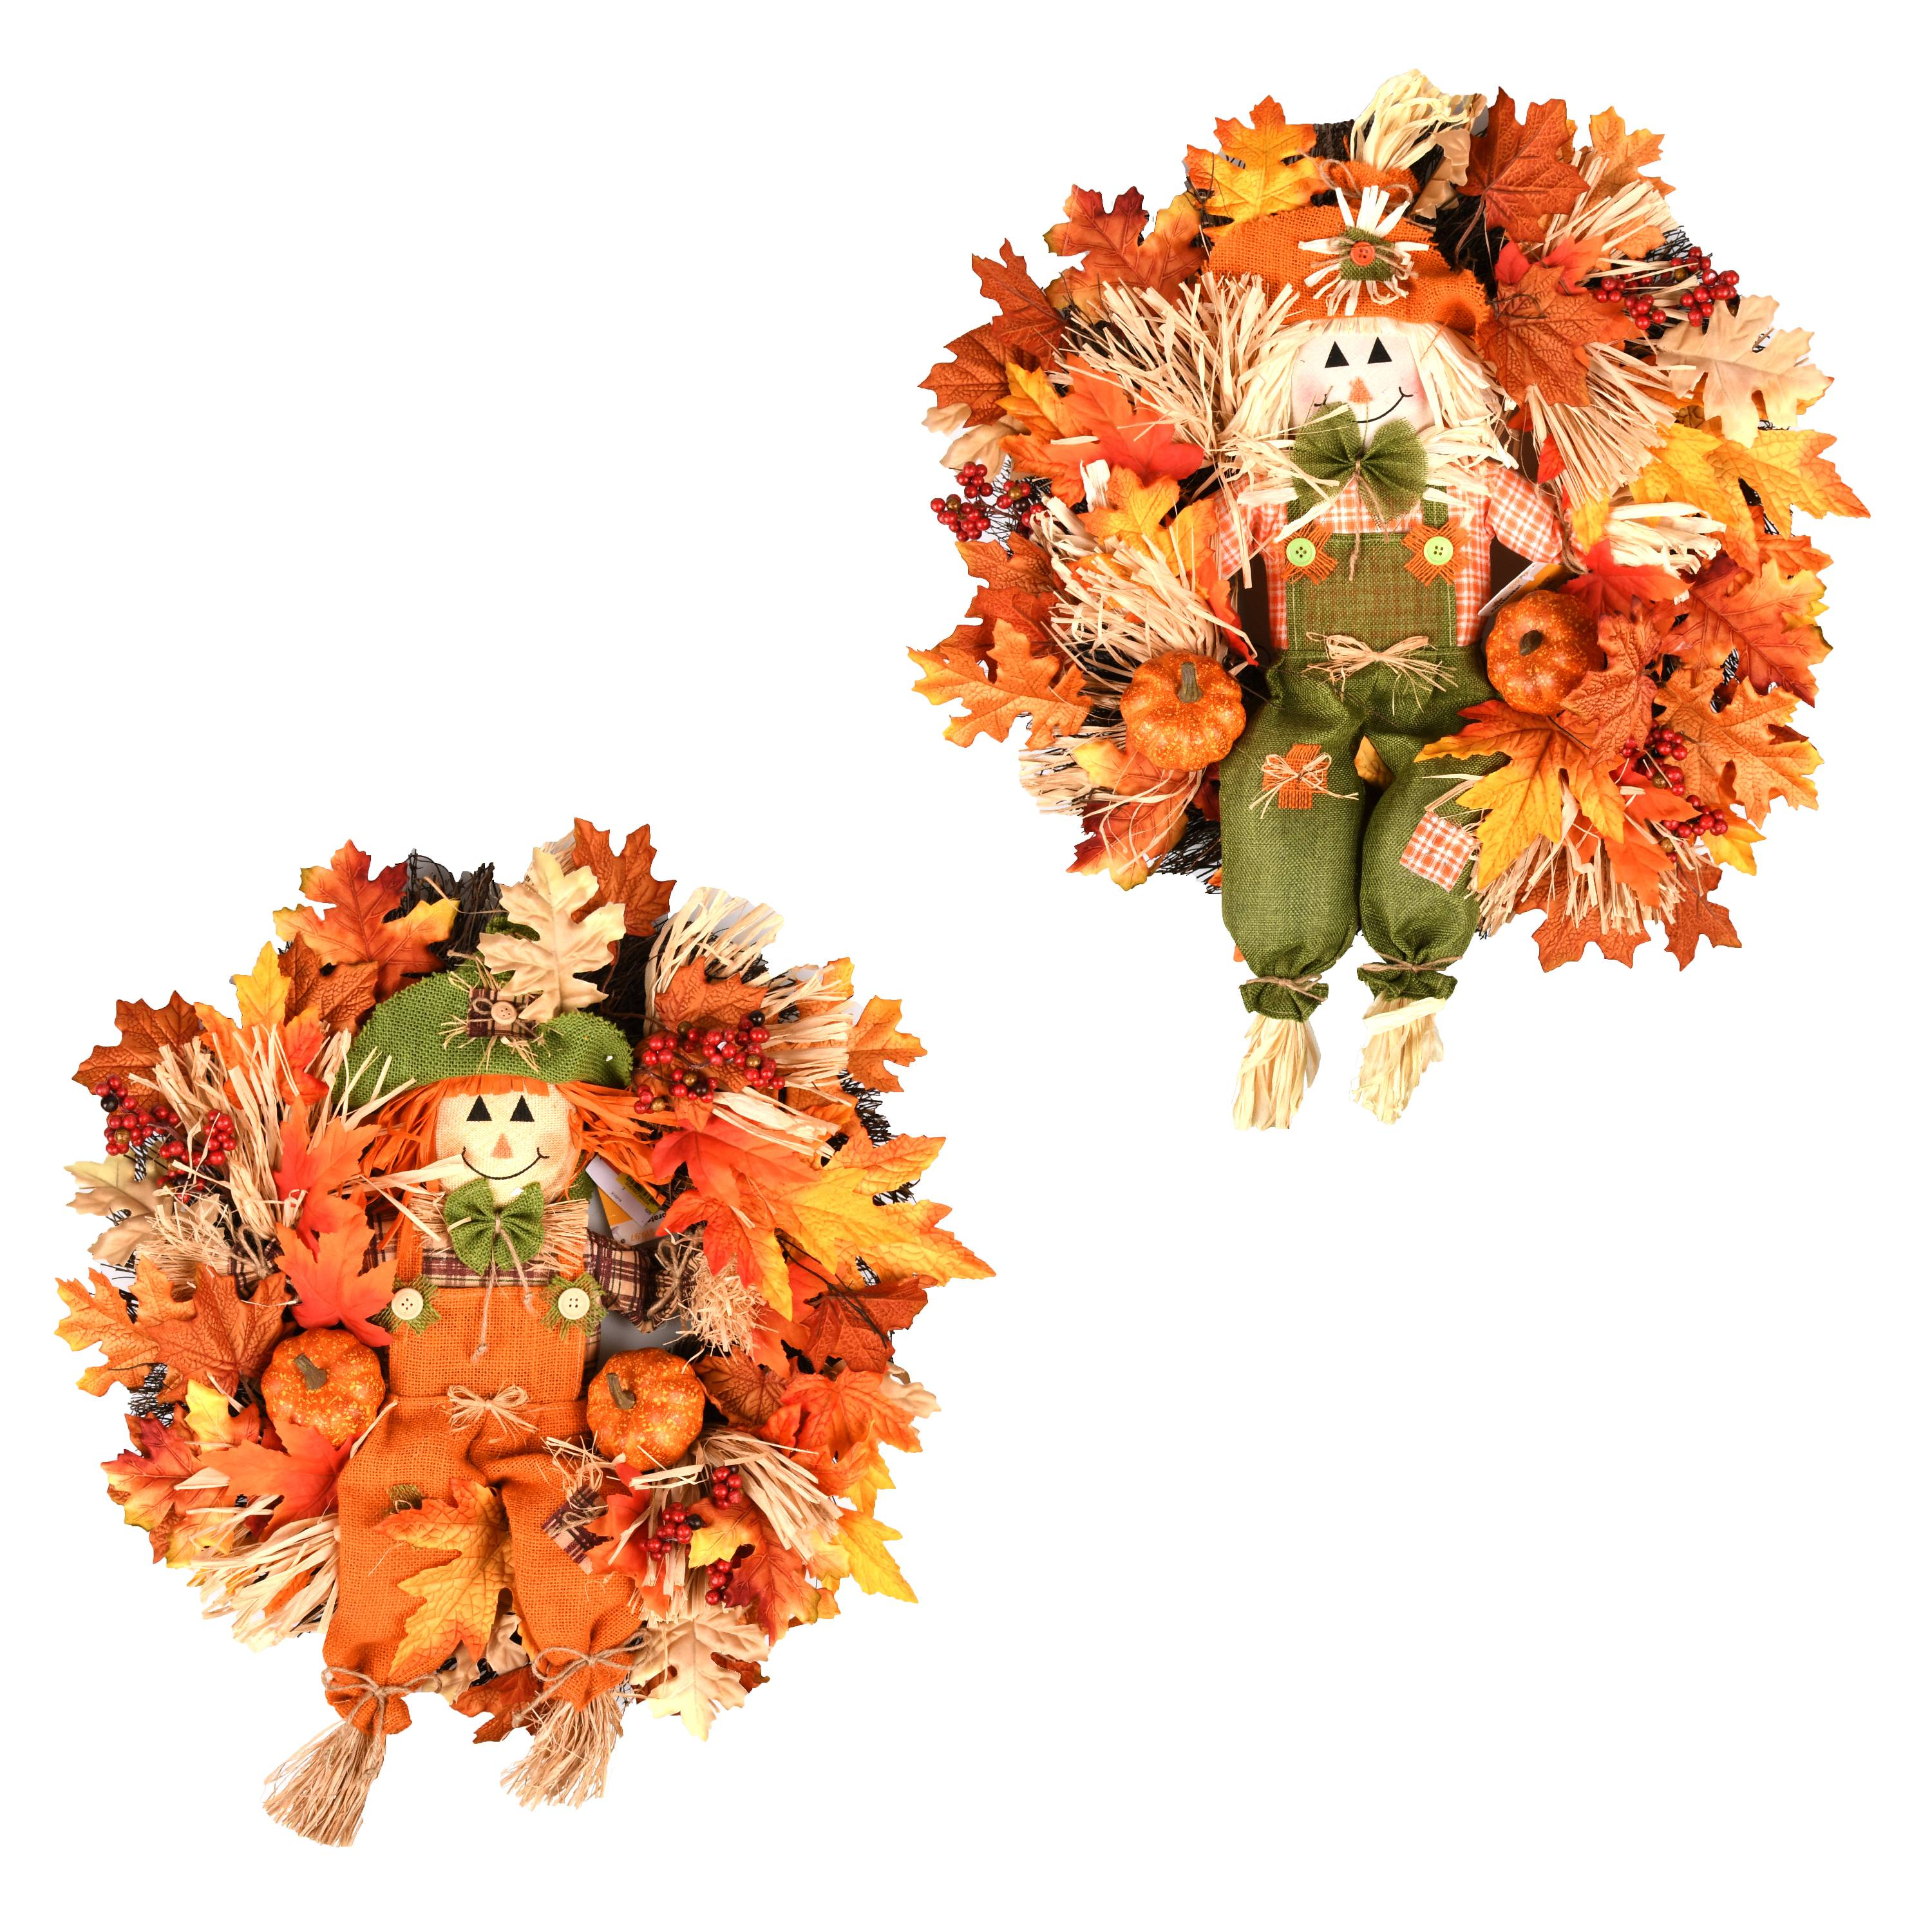 Harvest Wreath with Scarecrow